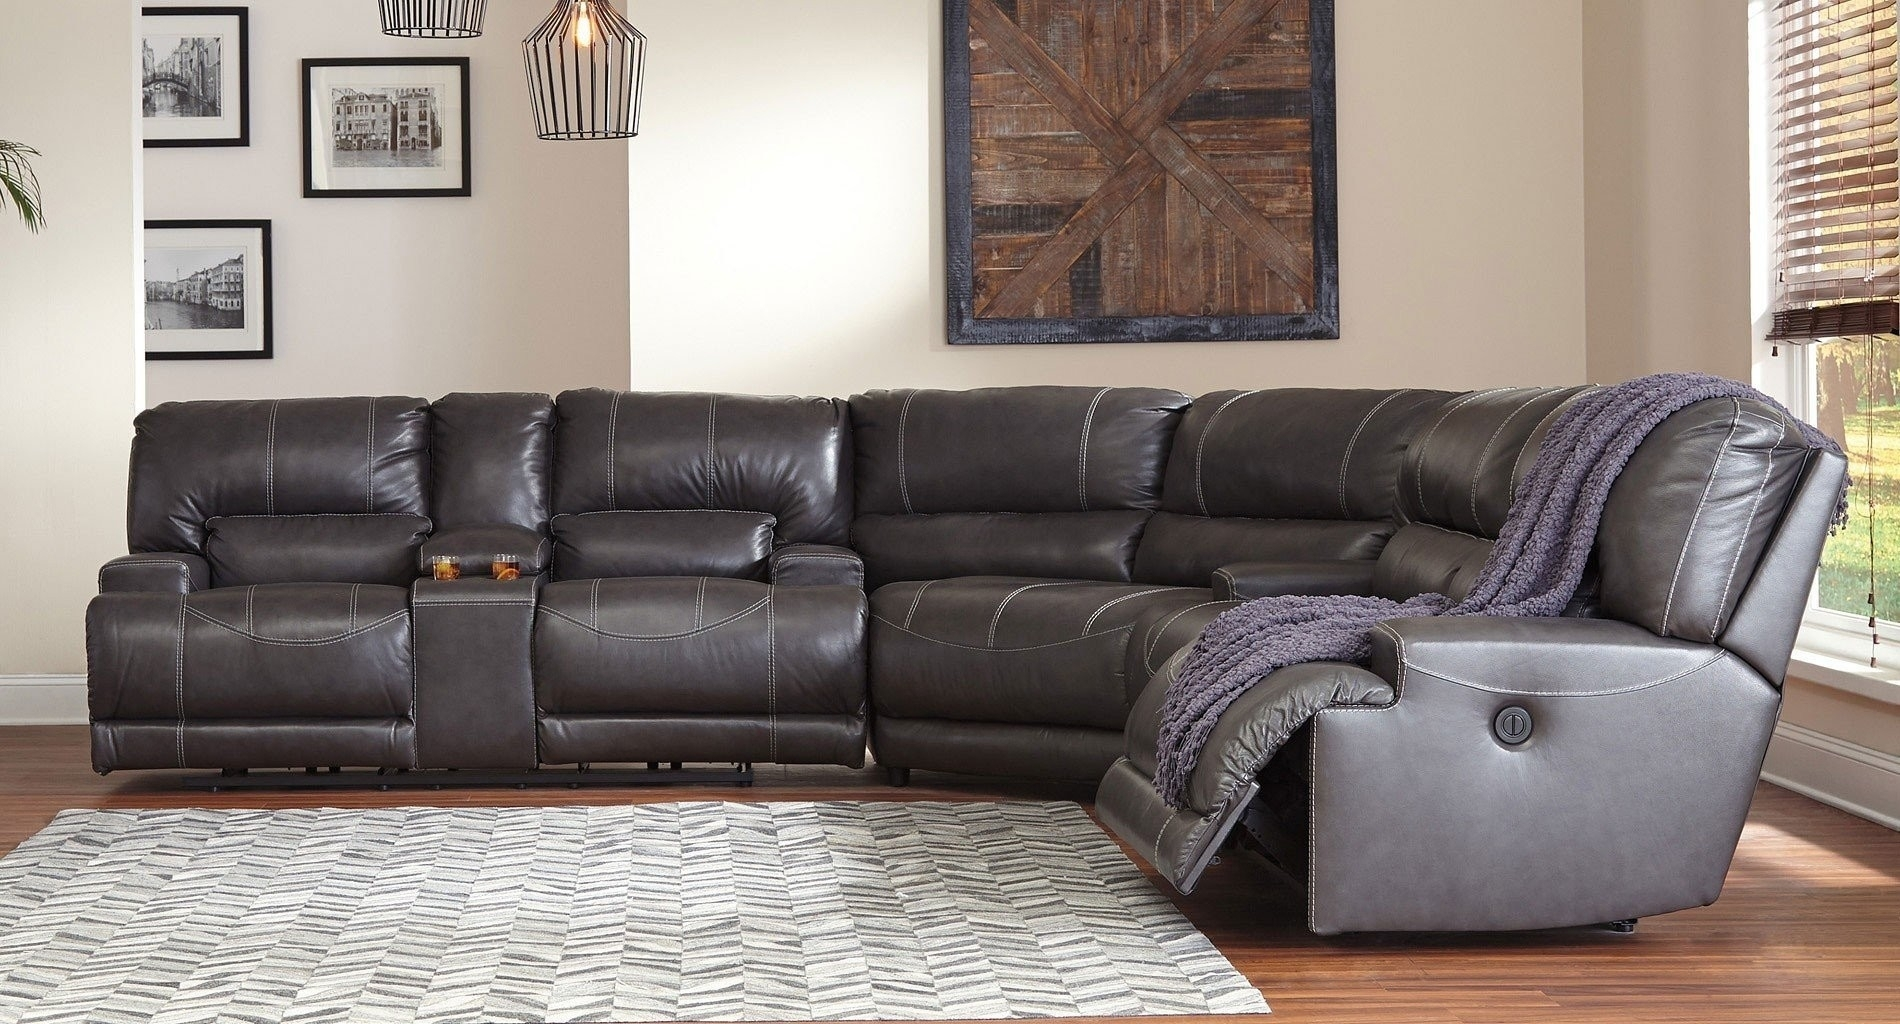 Grey Leather Reclining Sectional Clyde 3 Piece Power W Pwr Hdrst For Clyde Grey Leather 3 Piece Power Reclining Sectionals With Pwr Hdrst & Usb (View 3 of 25)